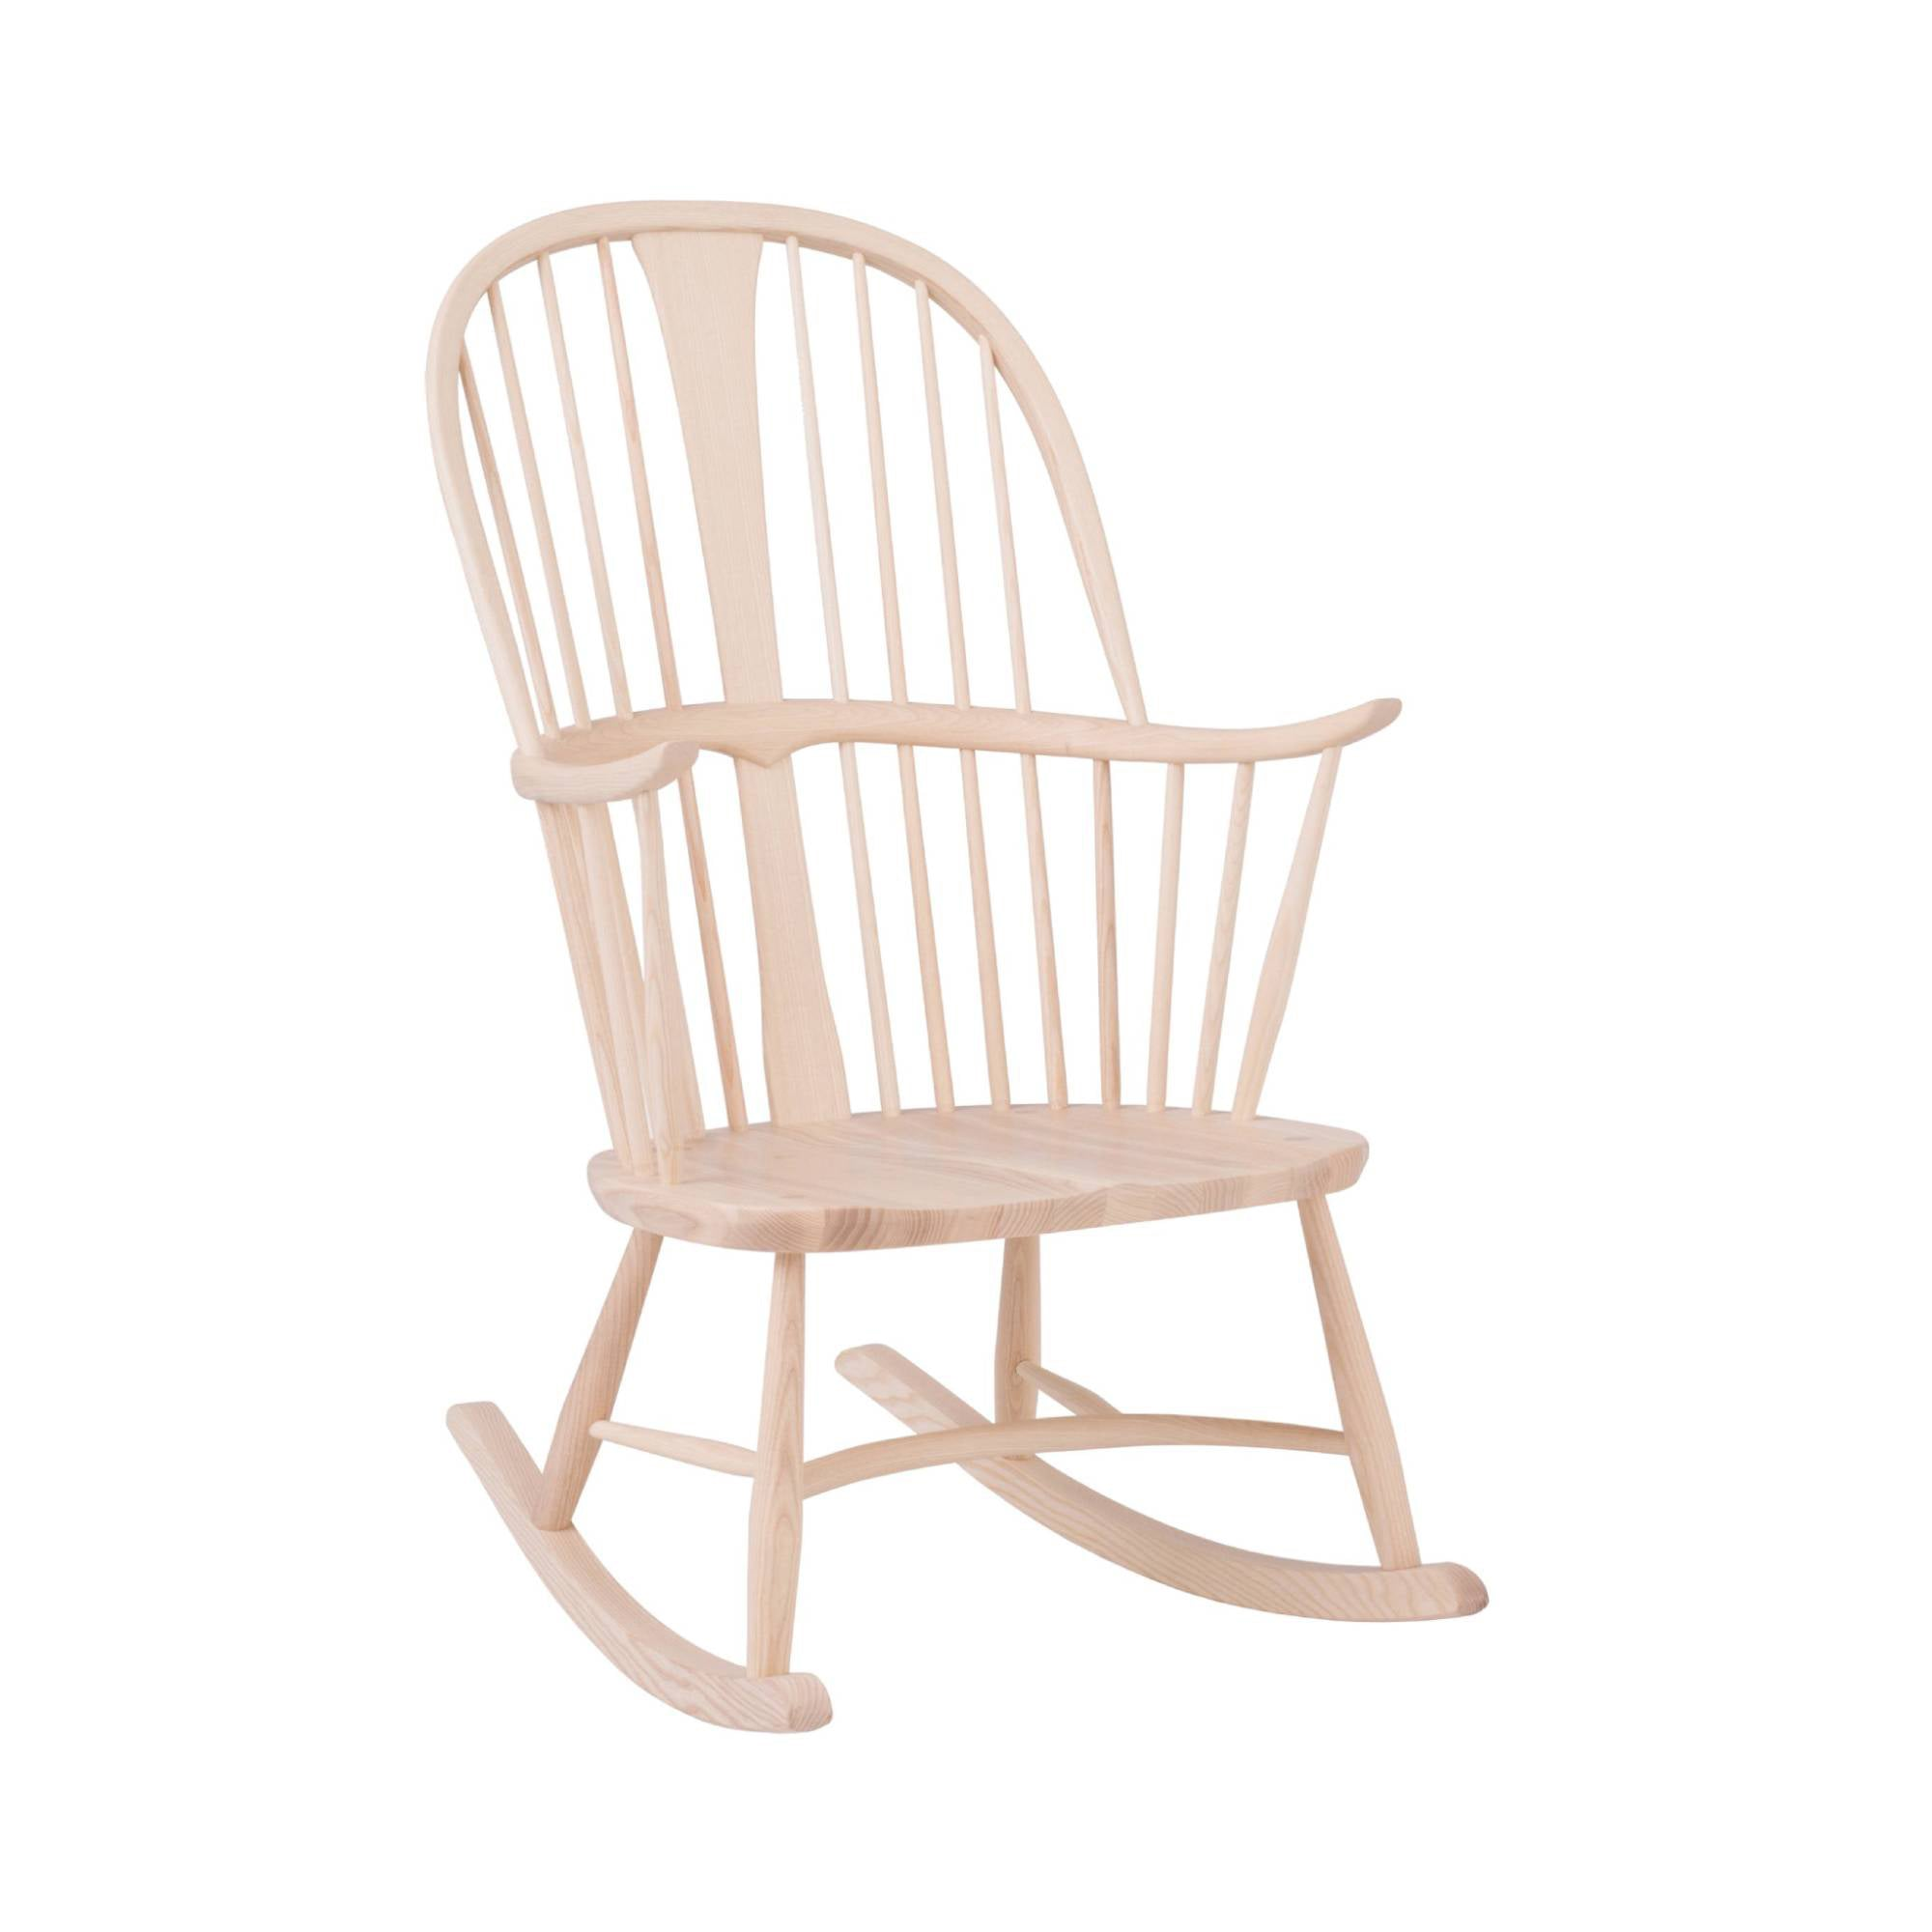 Originals Chairmakers Rocking Chair: Whitened Ash